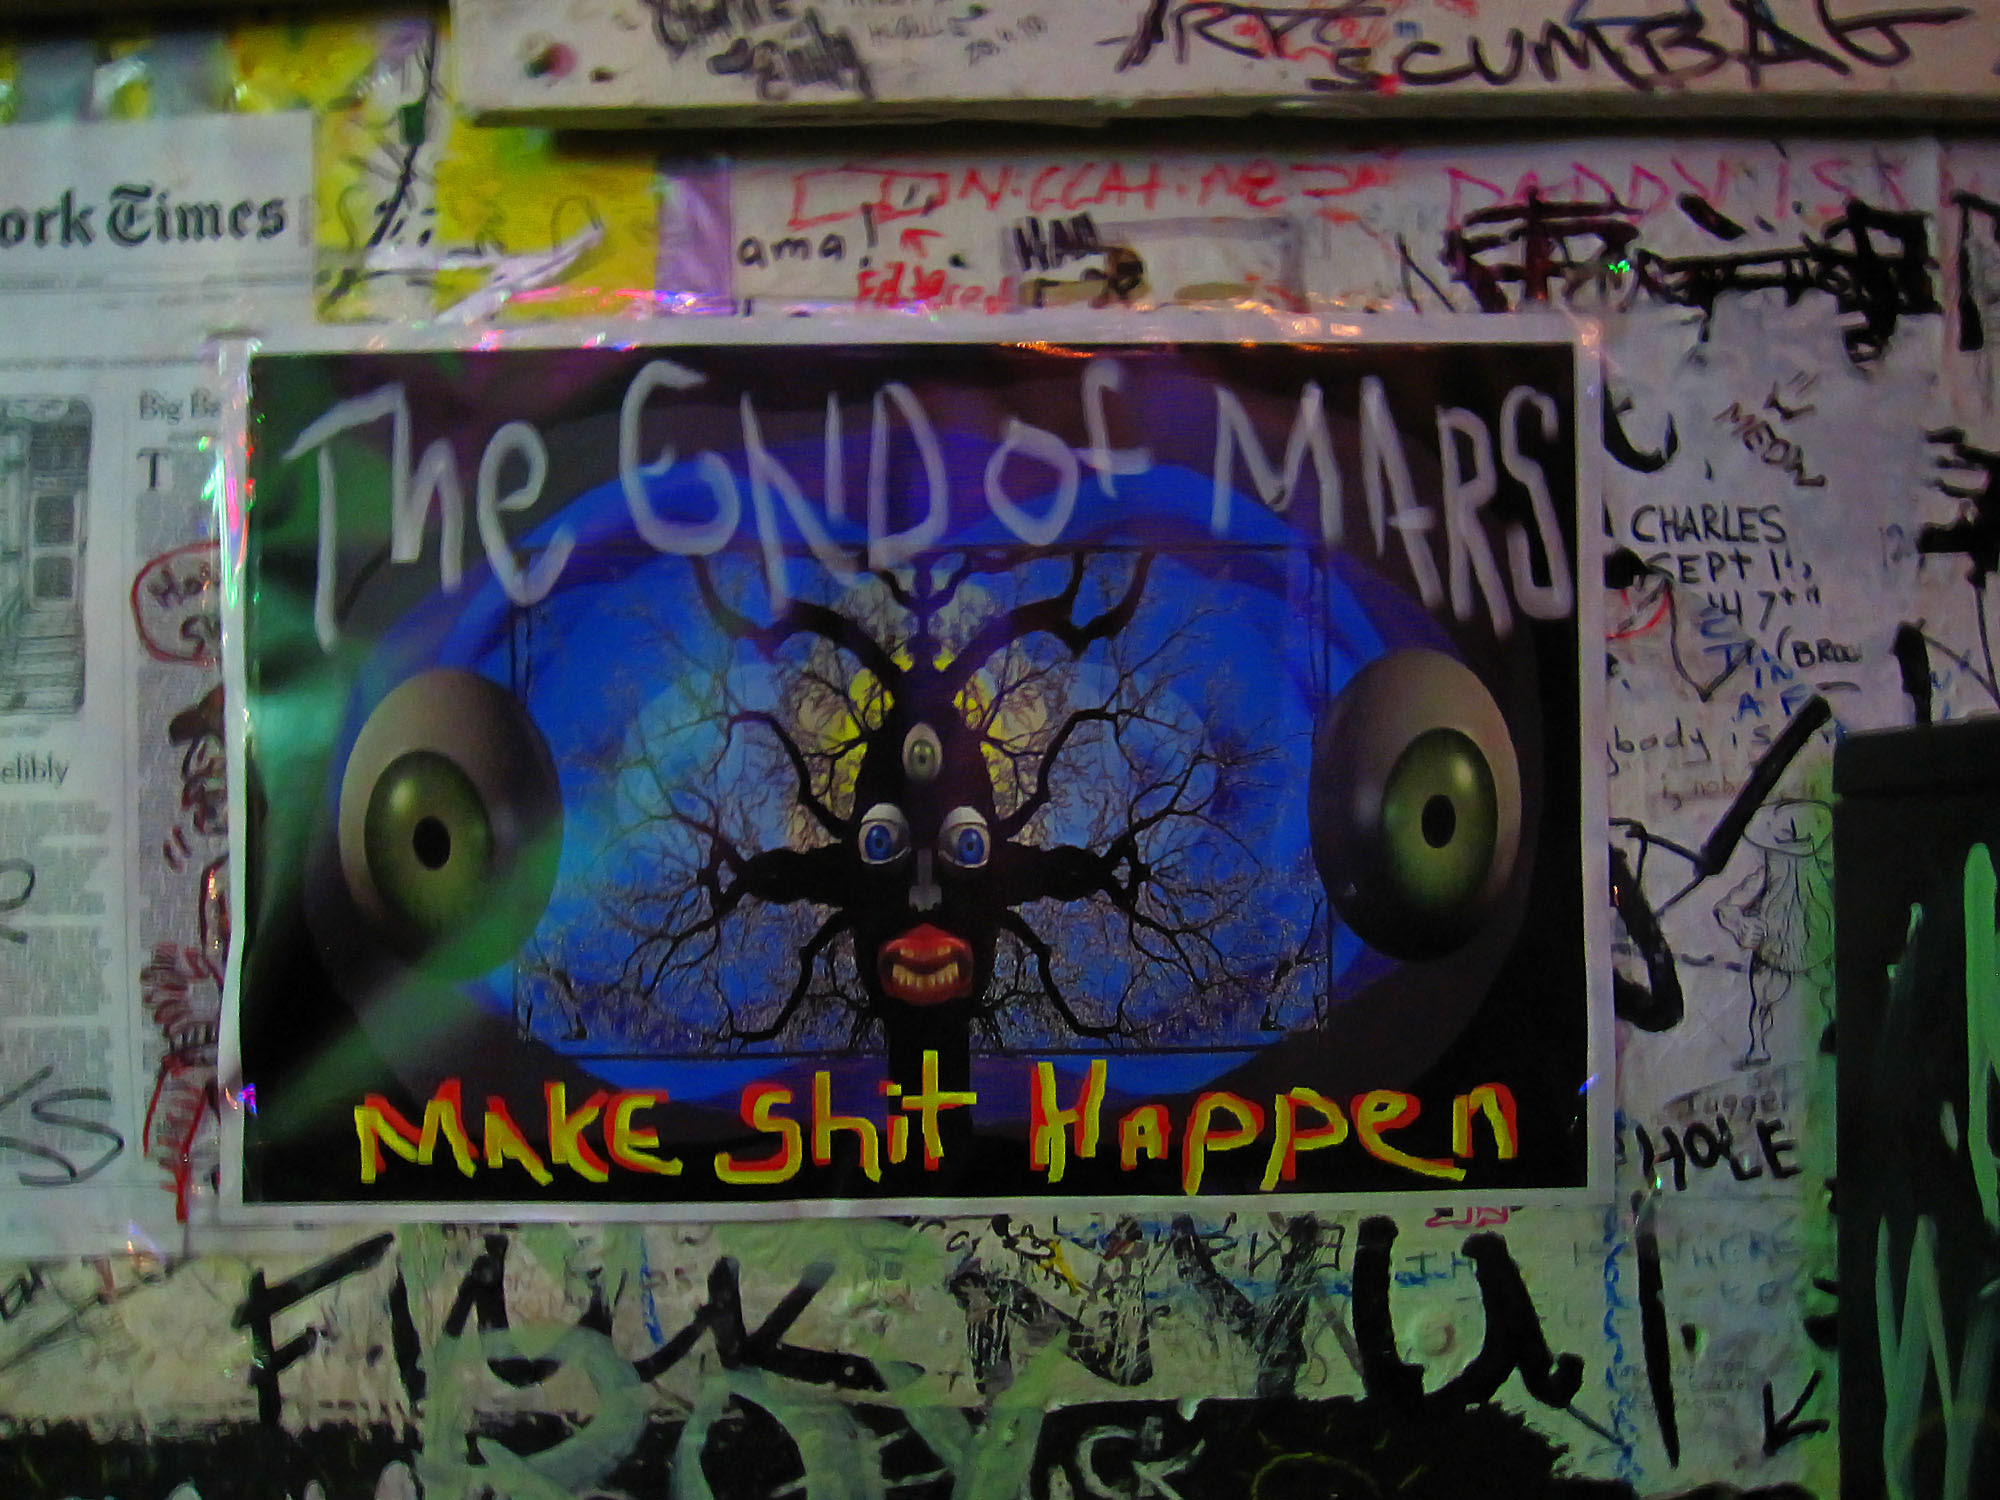 The end of Mars